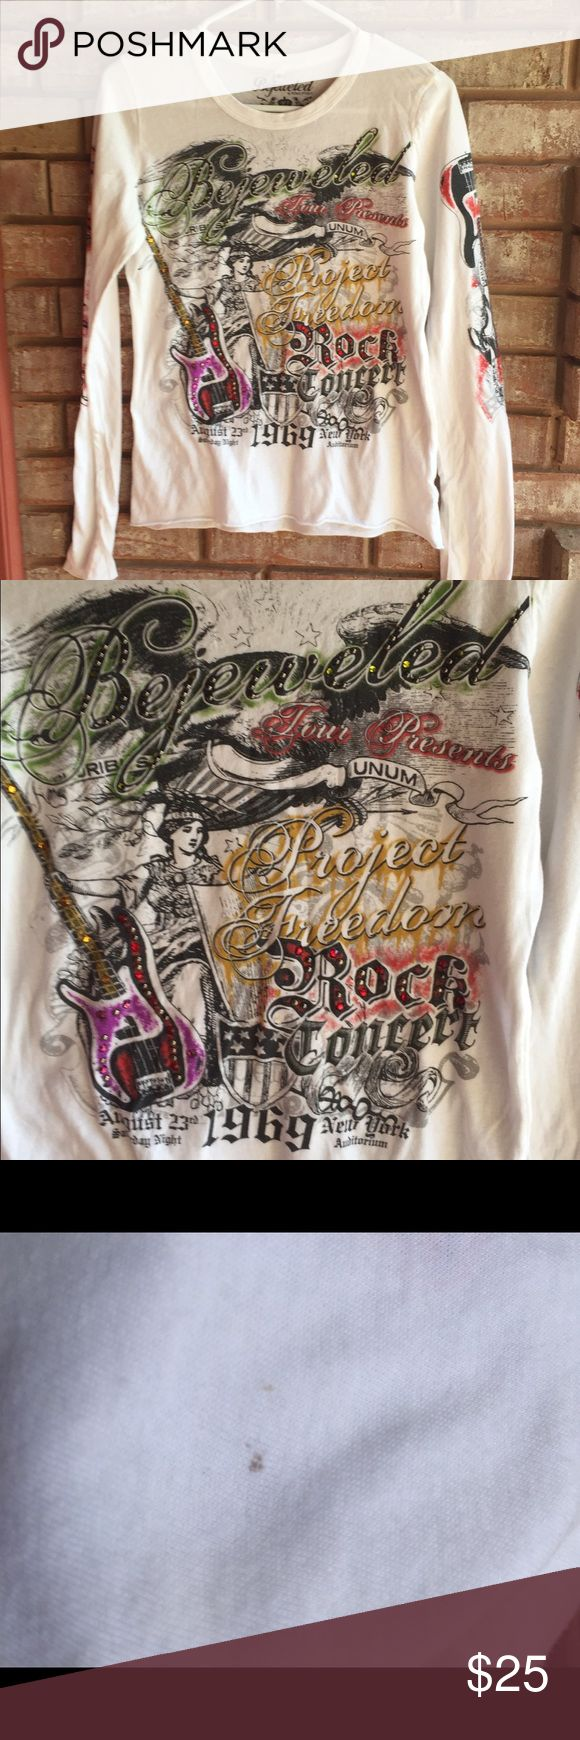 "Bejeweled Tee Awesome shirt, Bejeweled by Susan Fixel. No missing rhinestones. Only small stain (dots) under the ""s"" in Rocks on the sleeve. Great shirt to wear to your next rock concert! Bejeweled by Susan Fixel Tops Tees - Long Sleeve"